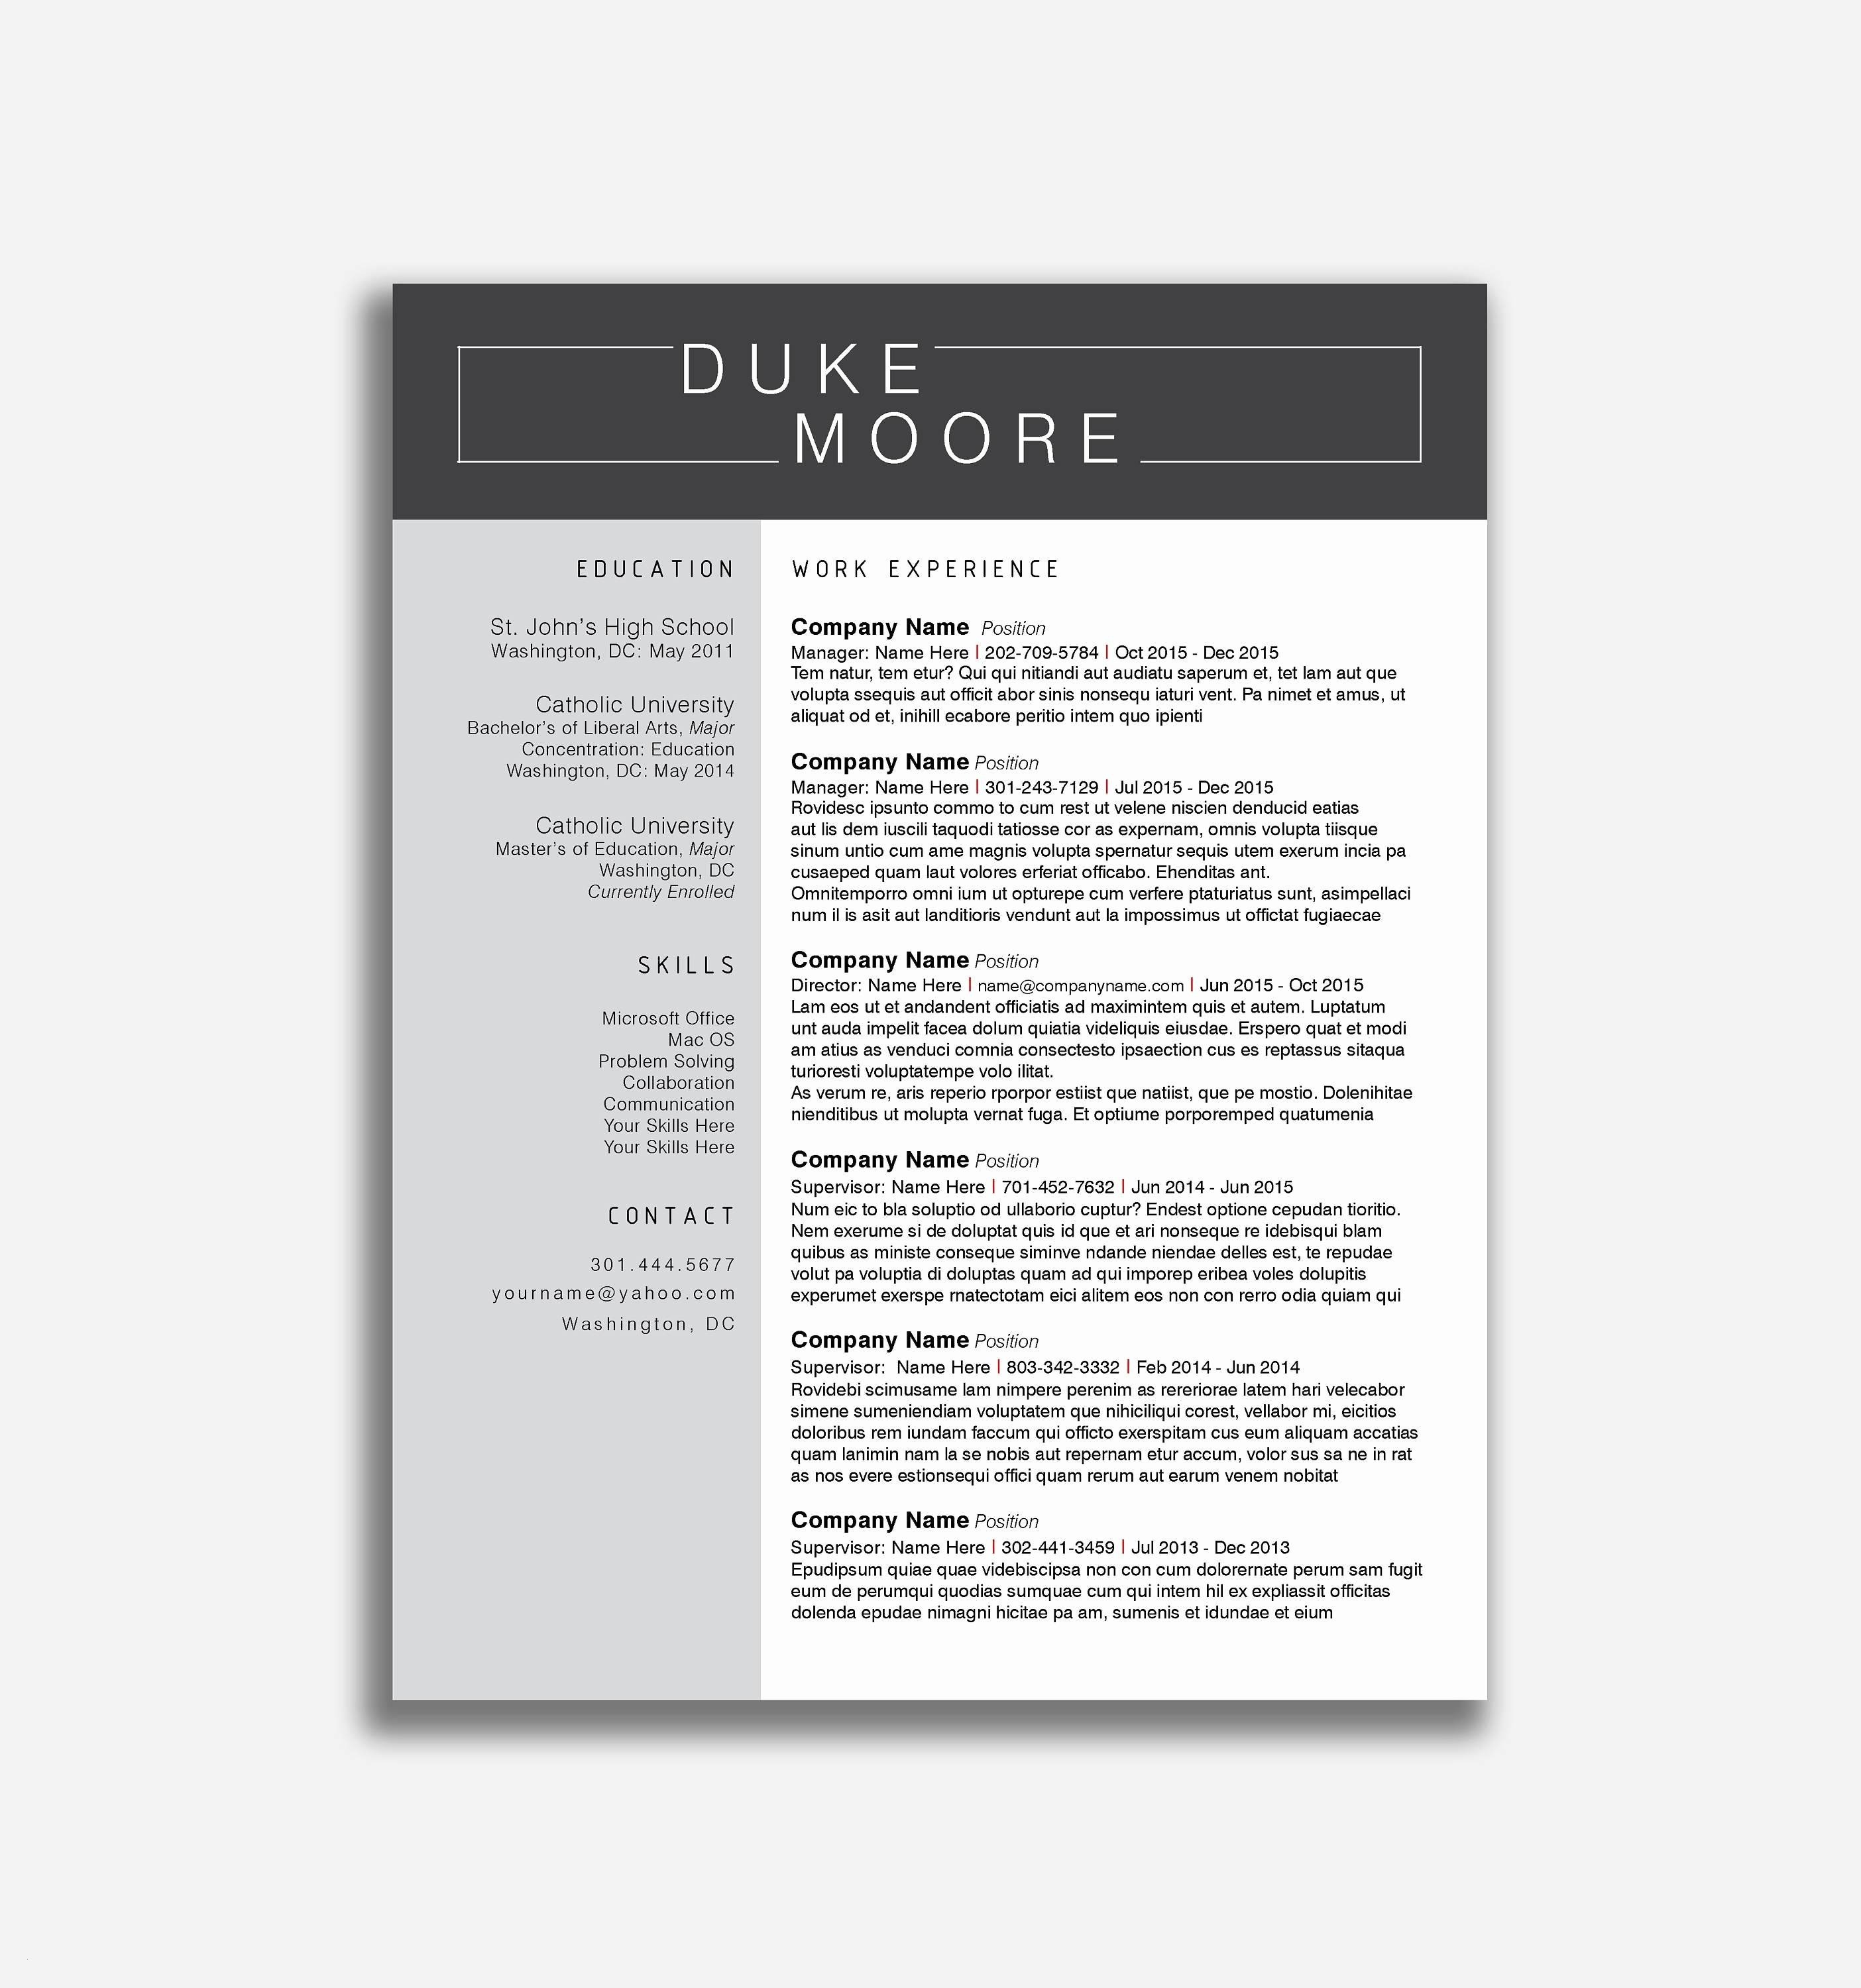 Free Resume Templates for Mac Pages - Free Resume Templates for Mac Pages